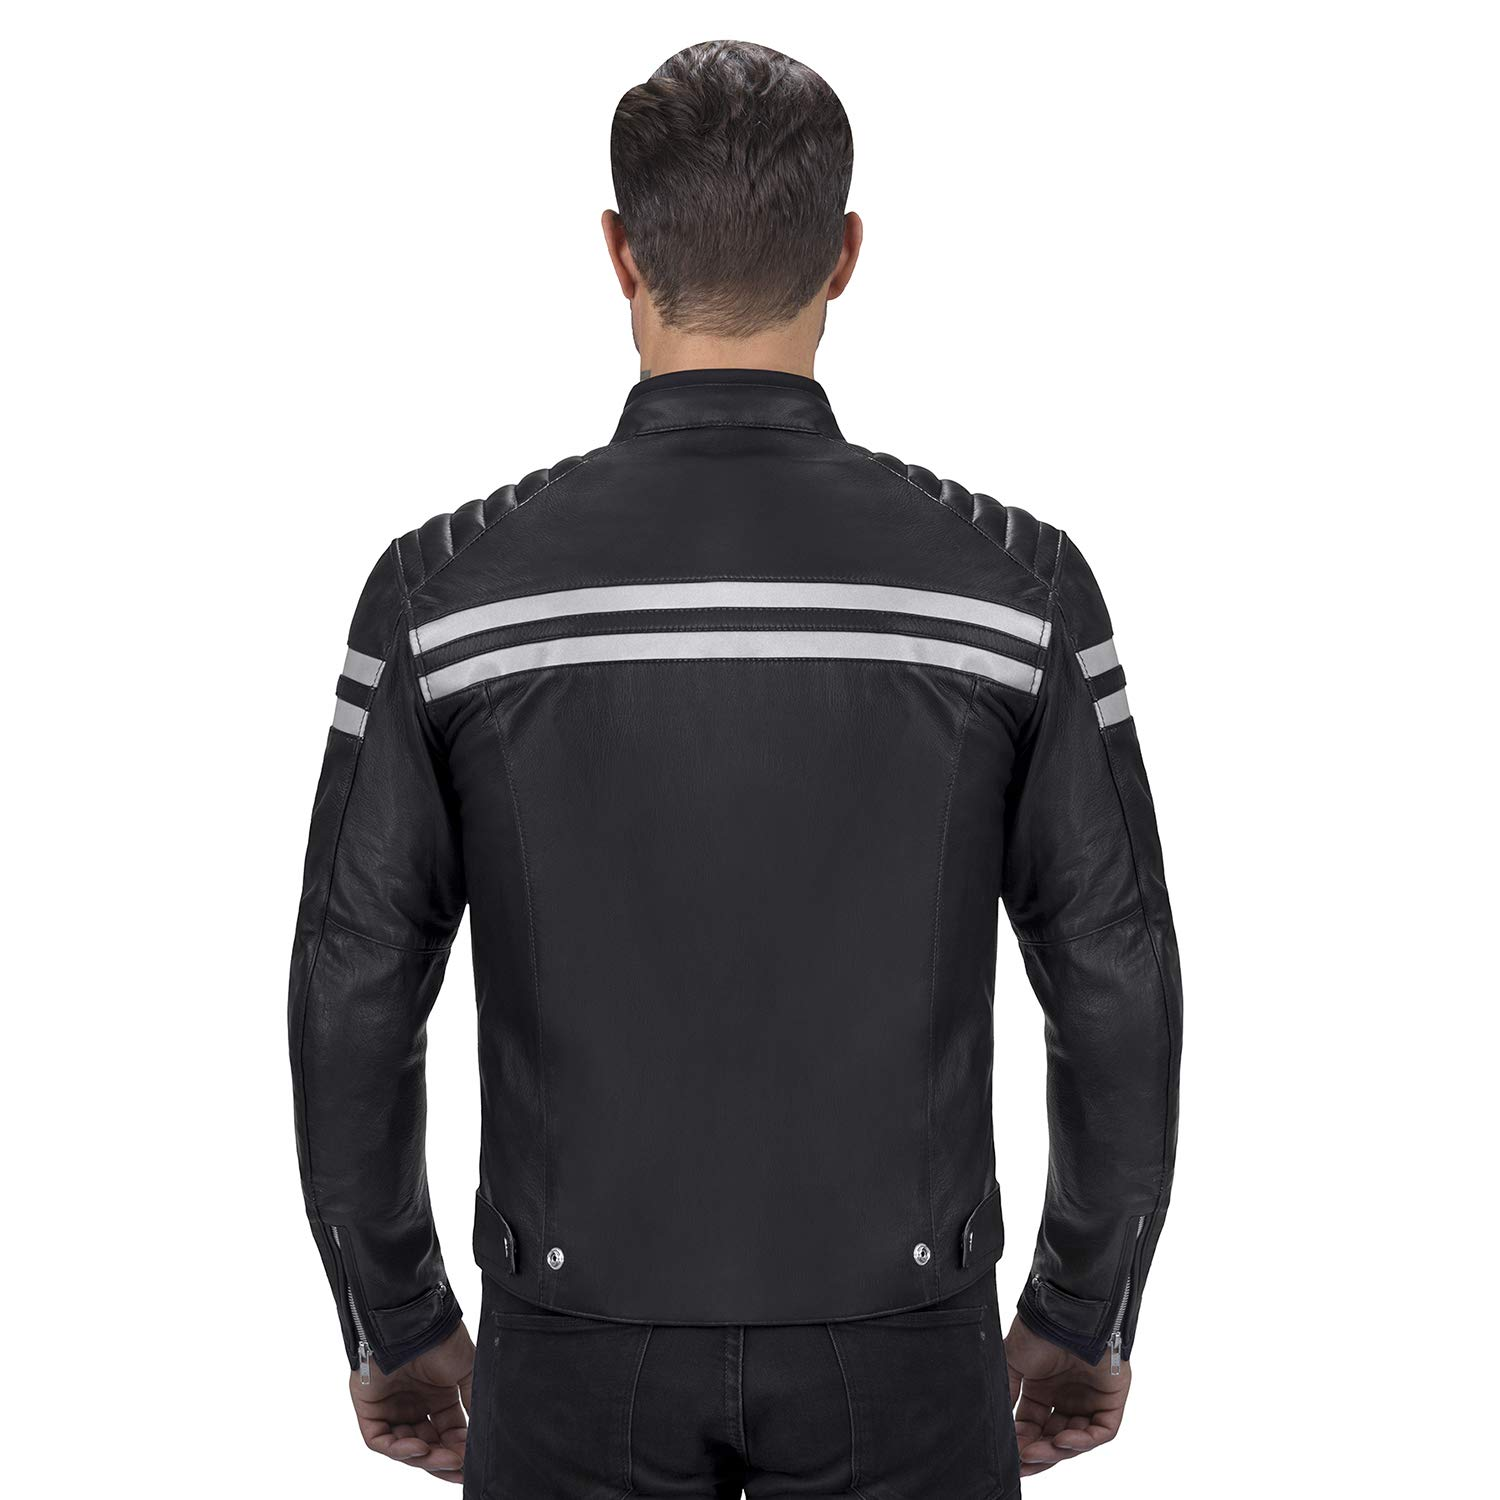 Viking Cycle Leather Motorcycle Jacket for Men Biker BloodAxe Armor Protection